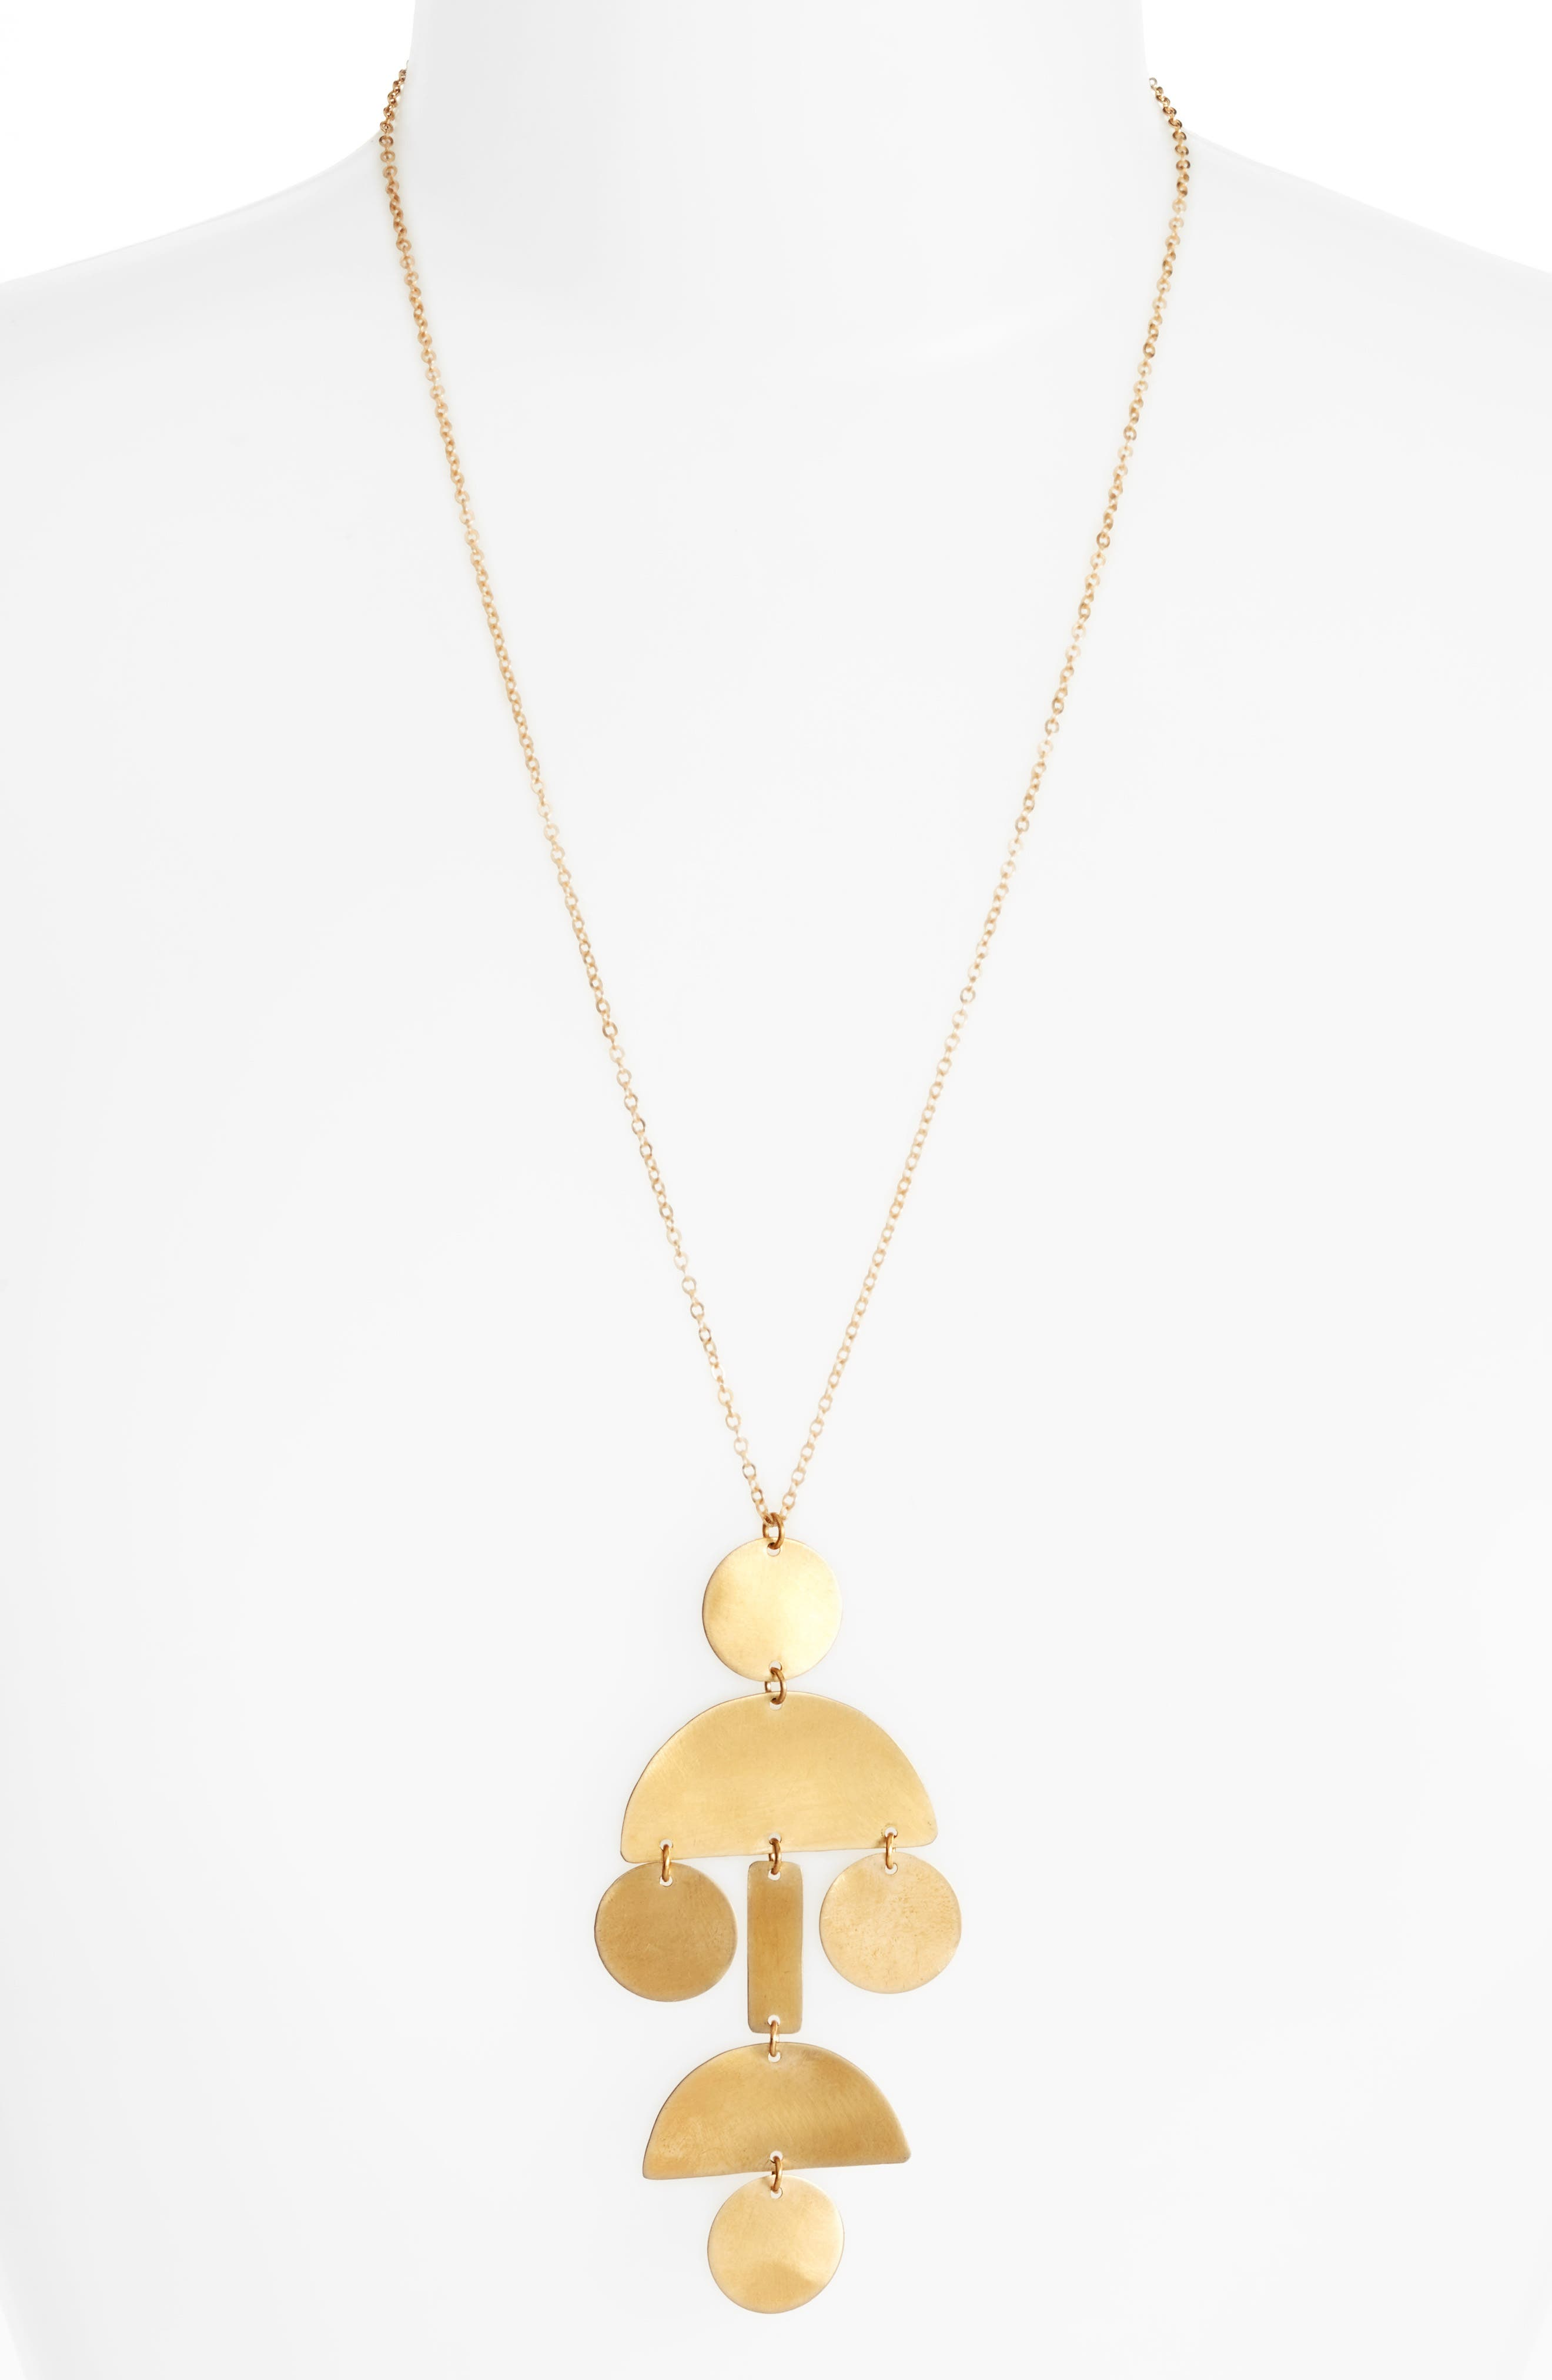 Geo Statement Necklace,                             Main thumbnail 1, color,                             710